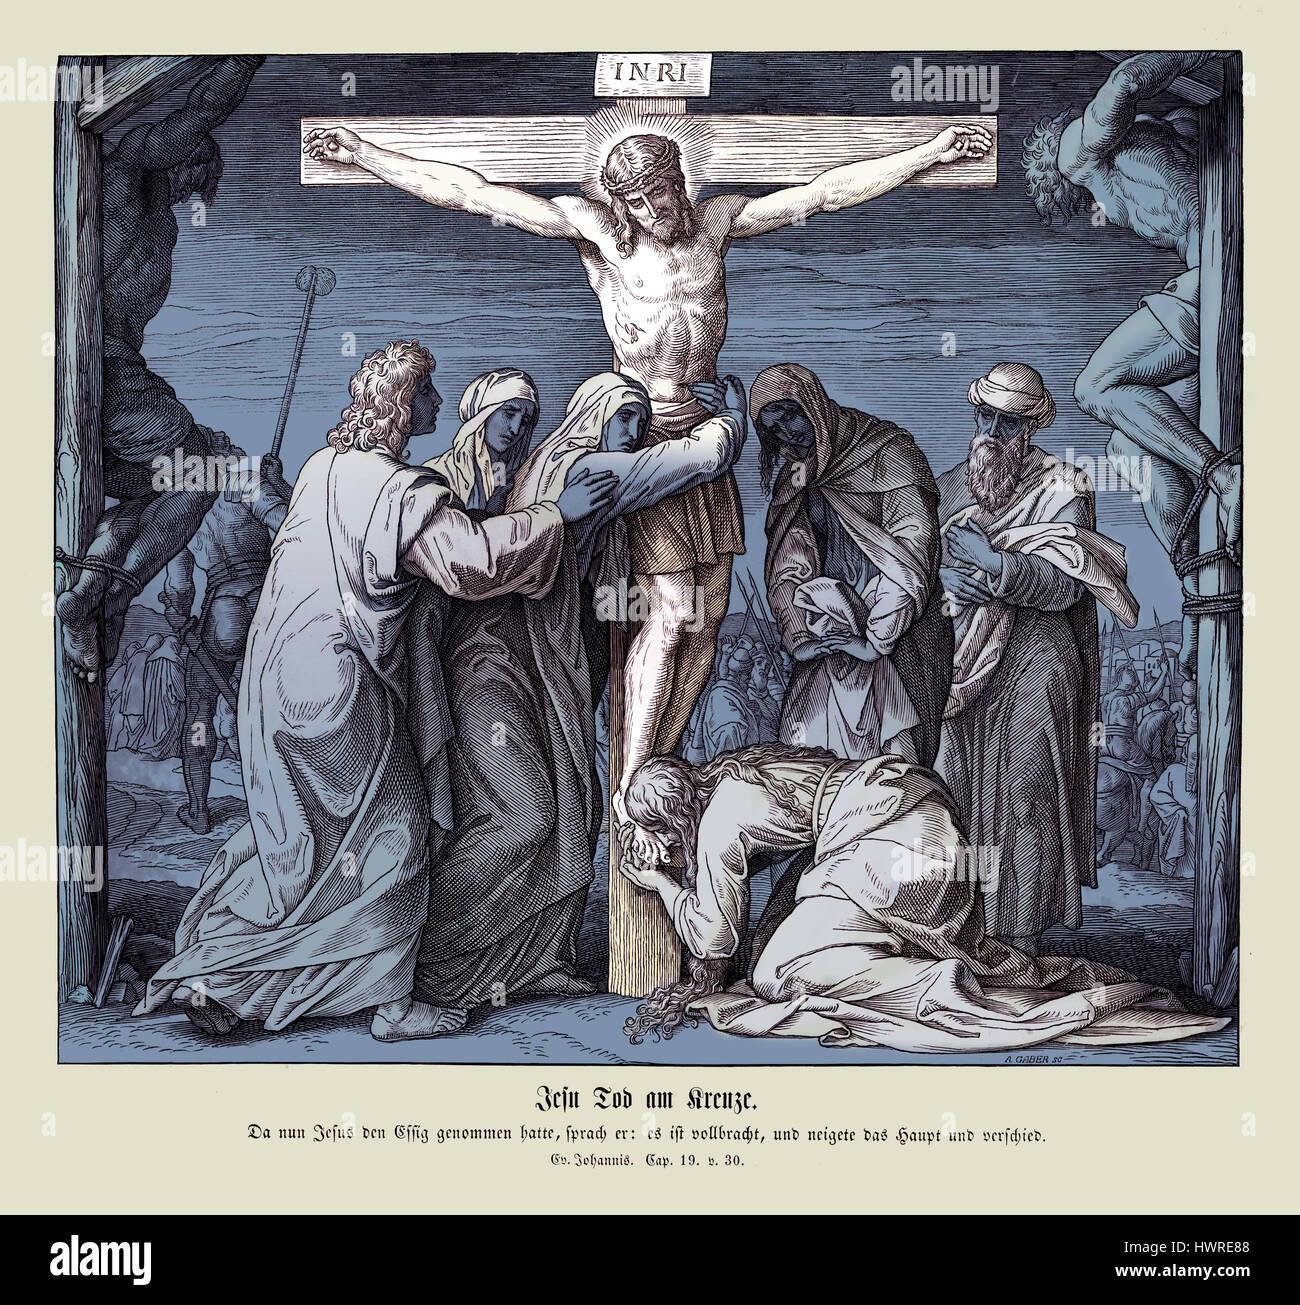 Death of Jesus on the cross, Gospel of John chapter XIX verse 30 'When Jesus therefore had received the vinegar, - Stock Image